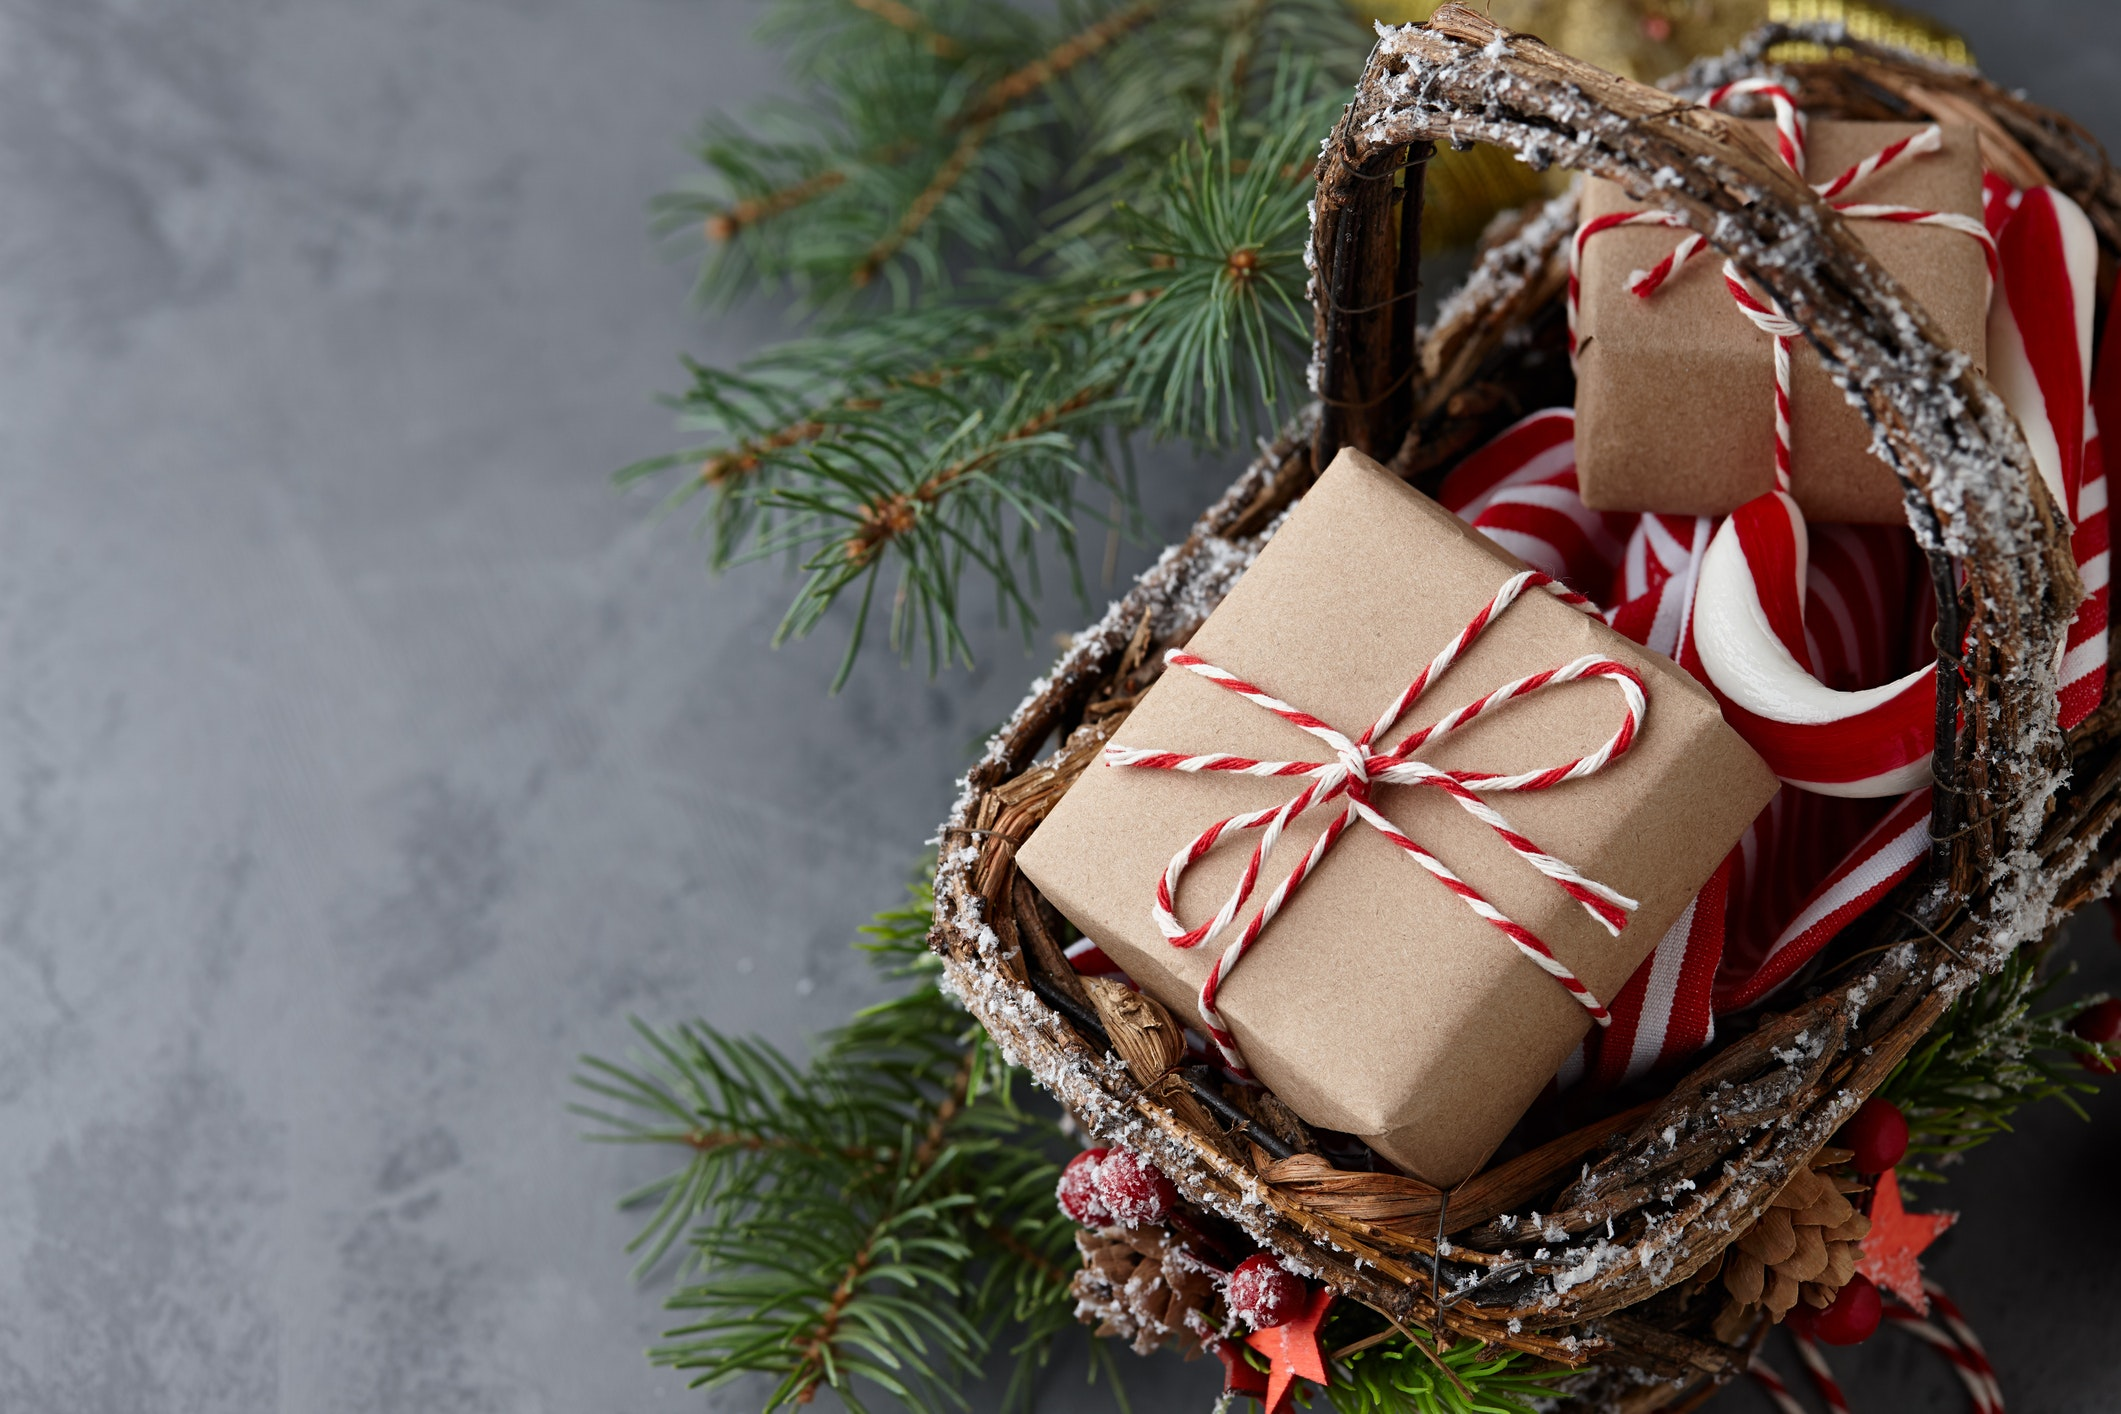 How Analysing Your Holiday Customer Gift Spend Can Drive Next Year's Revenues